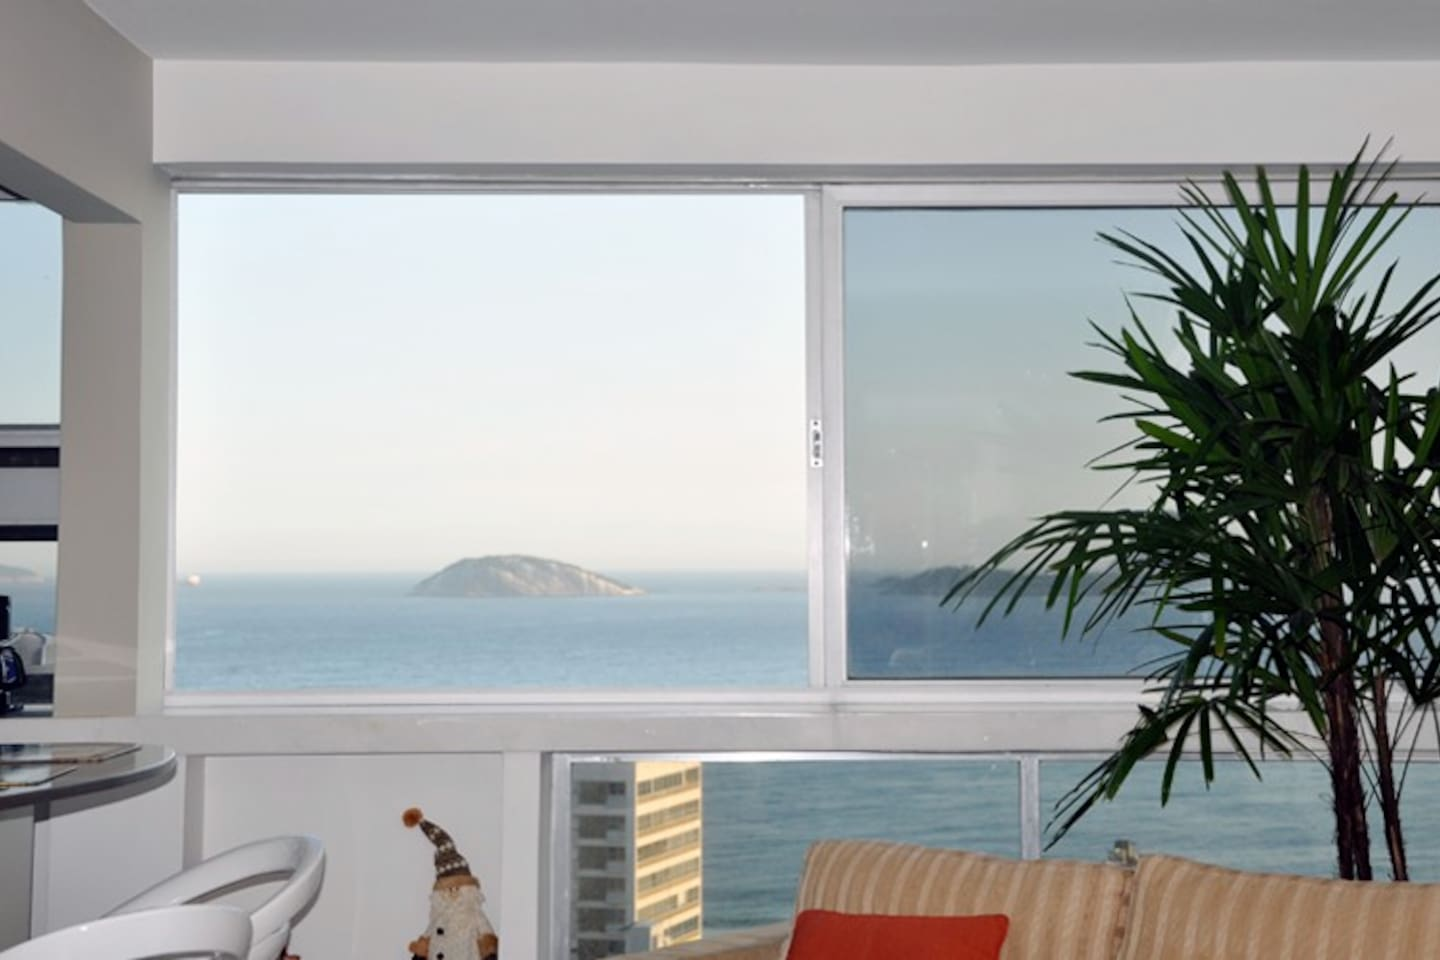 Apartment with a magnificent view of the sea